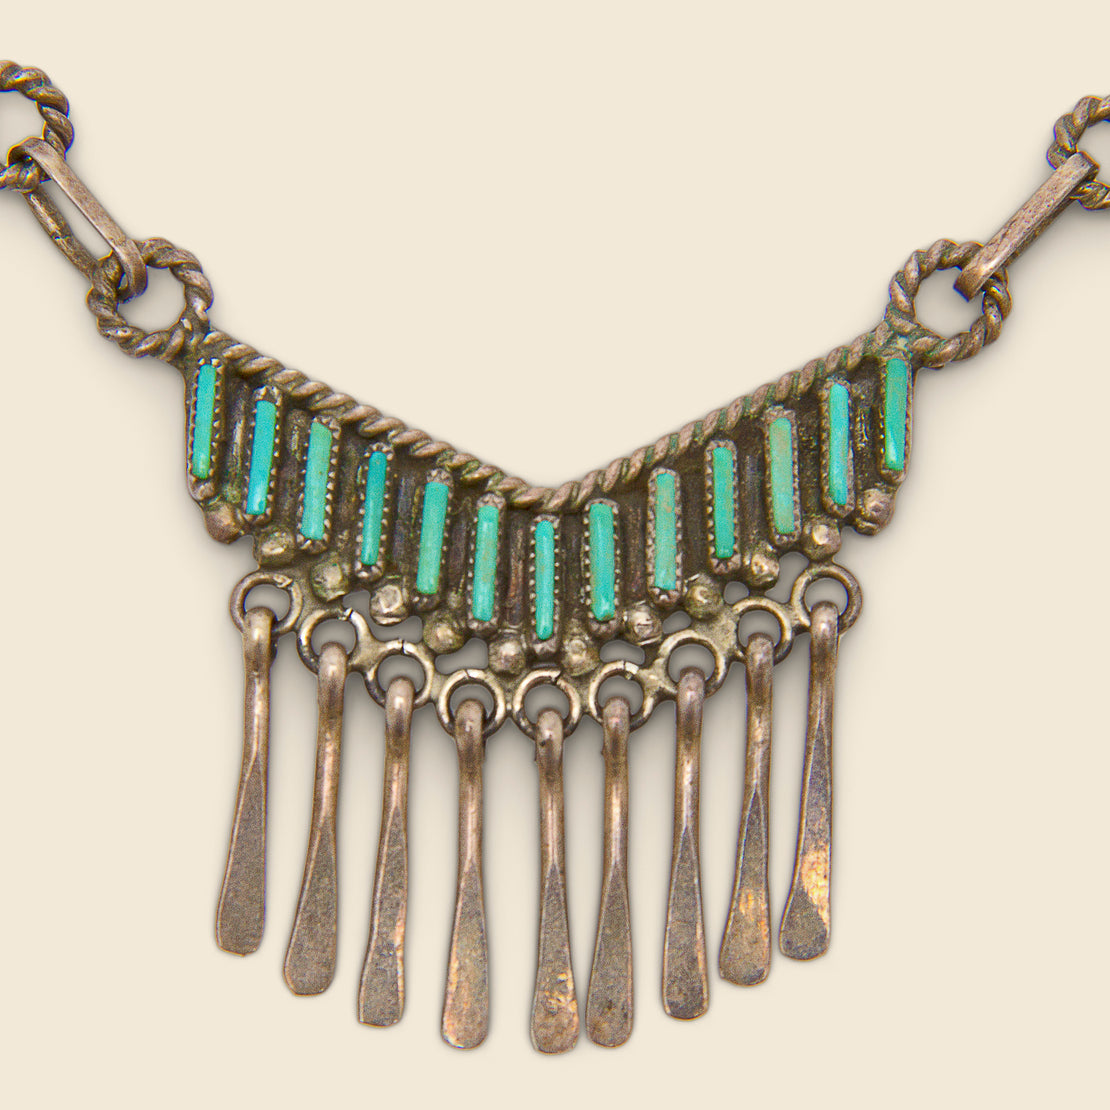 Pieced Necklace - Silver & Turquoise